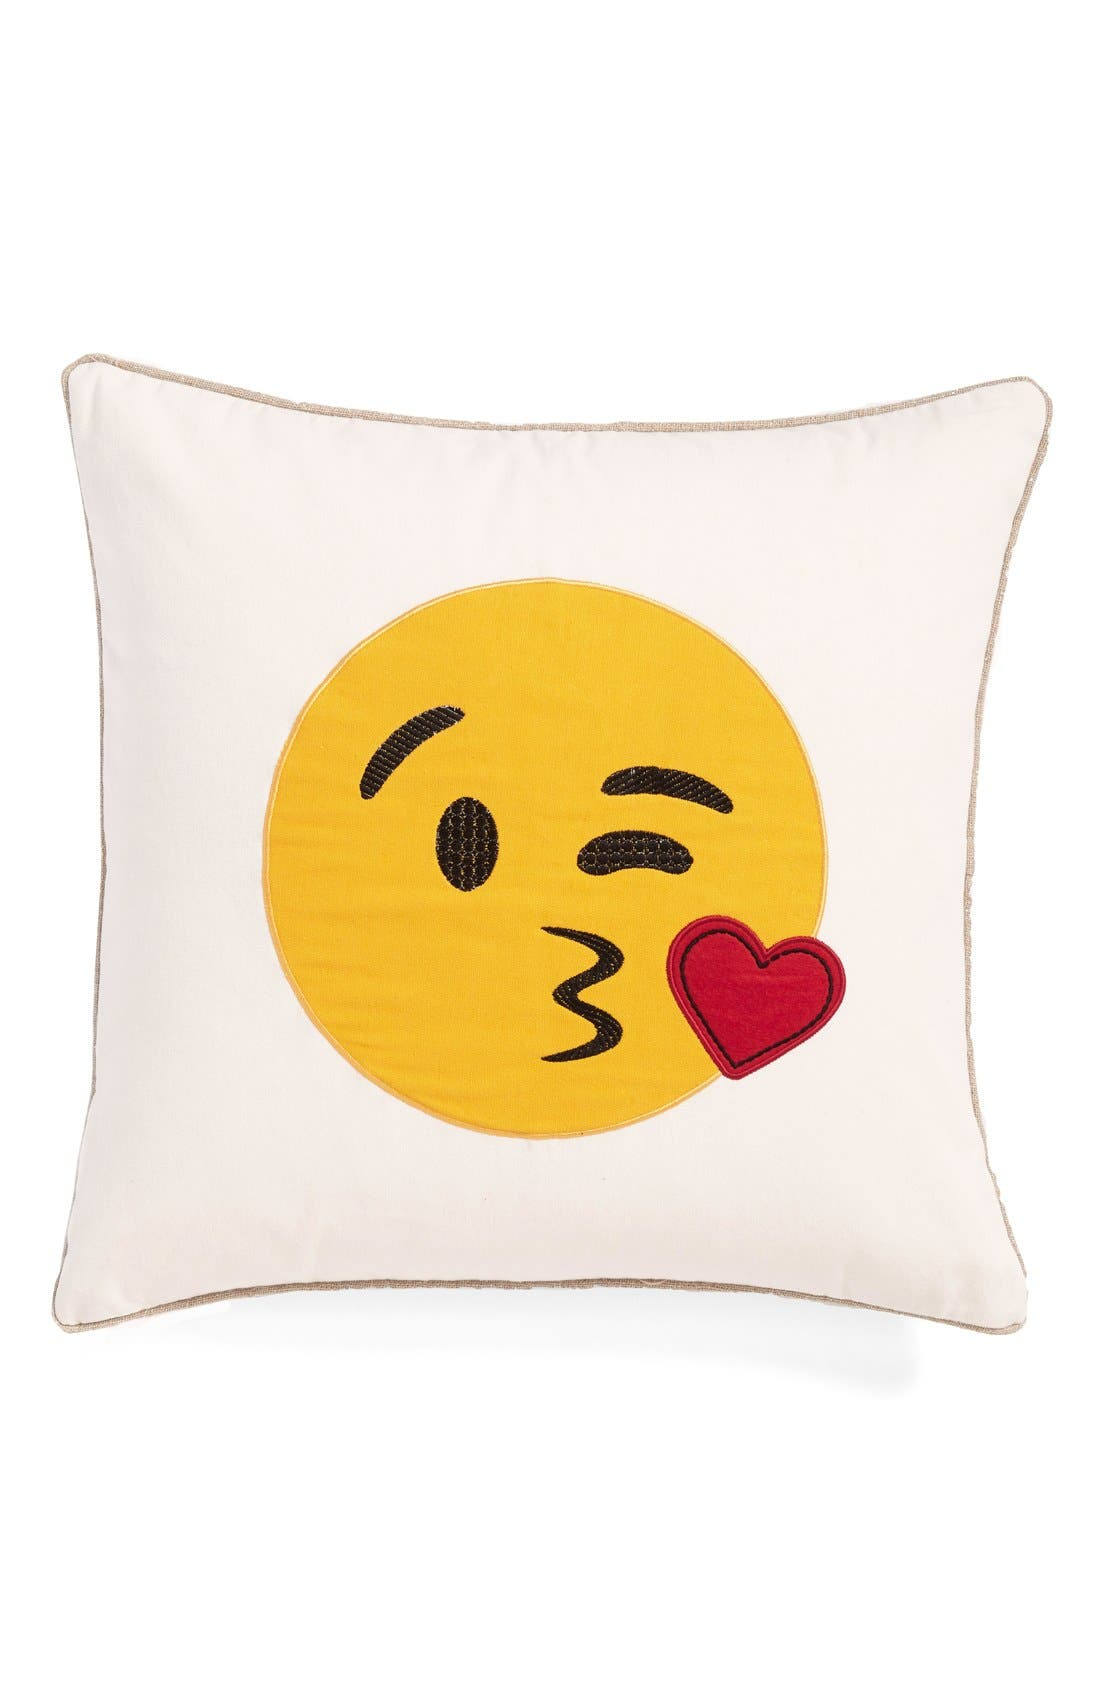 Main Image - Levtex 'Blowing Kisses' Pillow